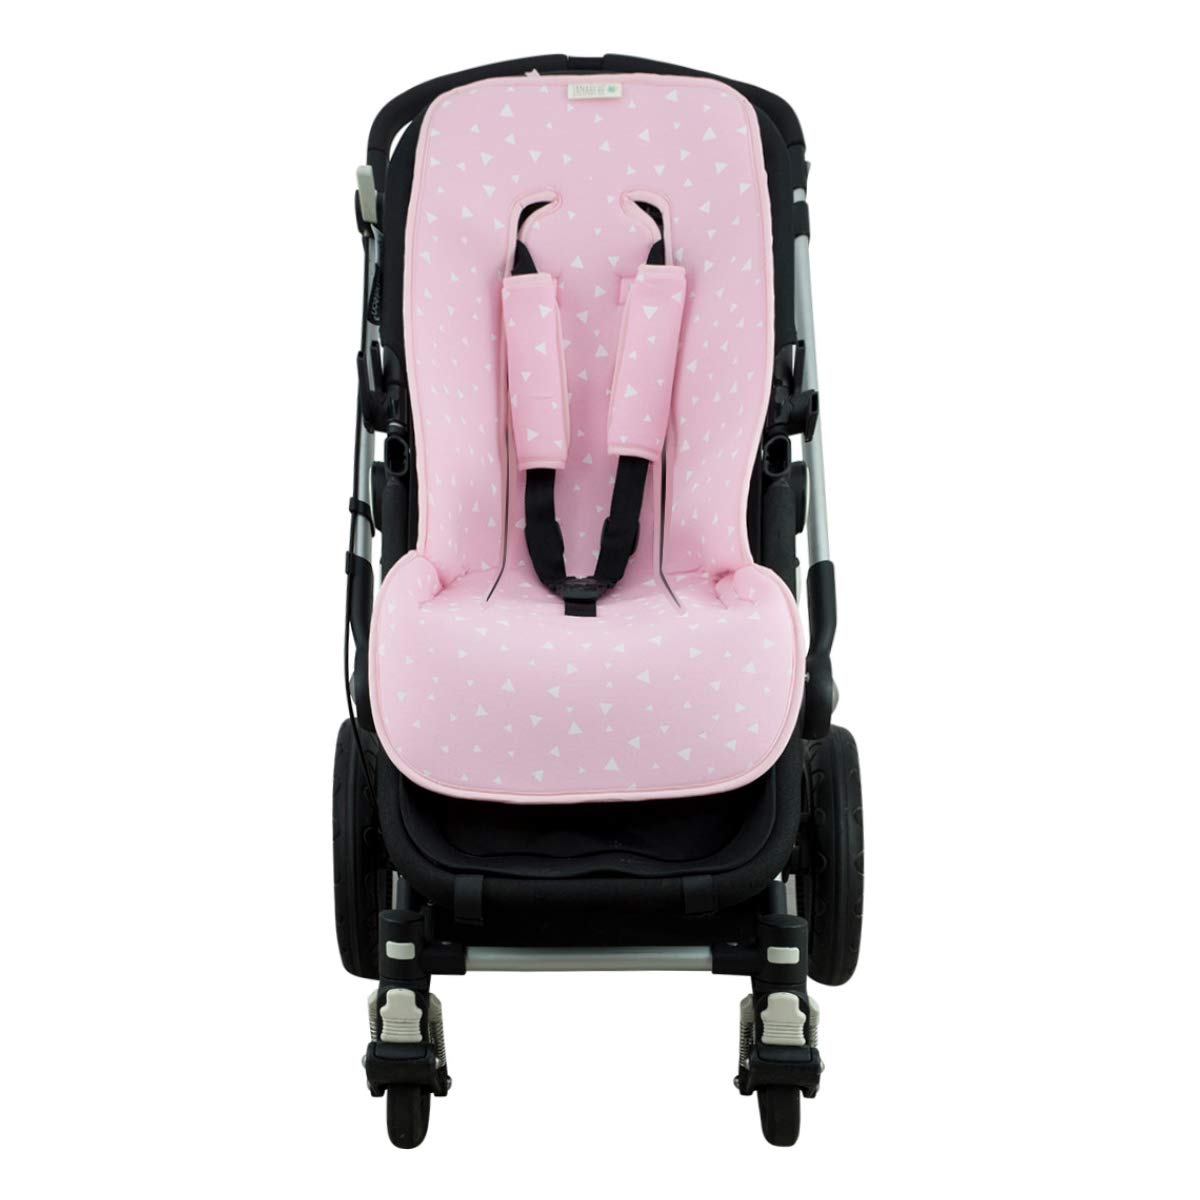 Janabebé Universal Cover Pushchair Luxury Foam + Protection Harnesses (Inglesina, Cibex, Bugaboo and More) (Pink Sparkles) by JANABEBE